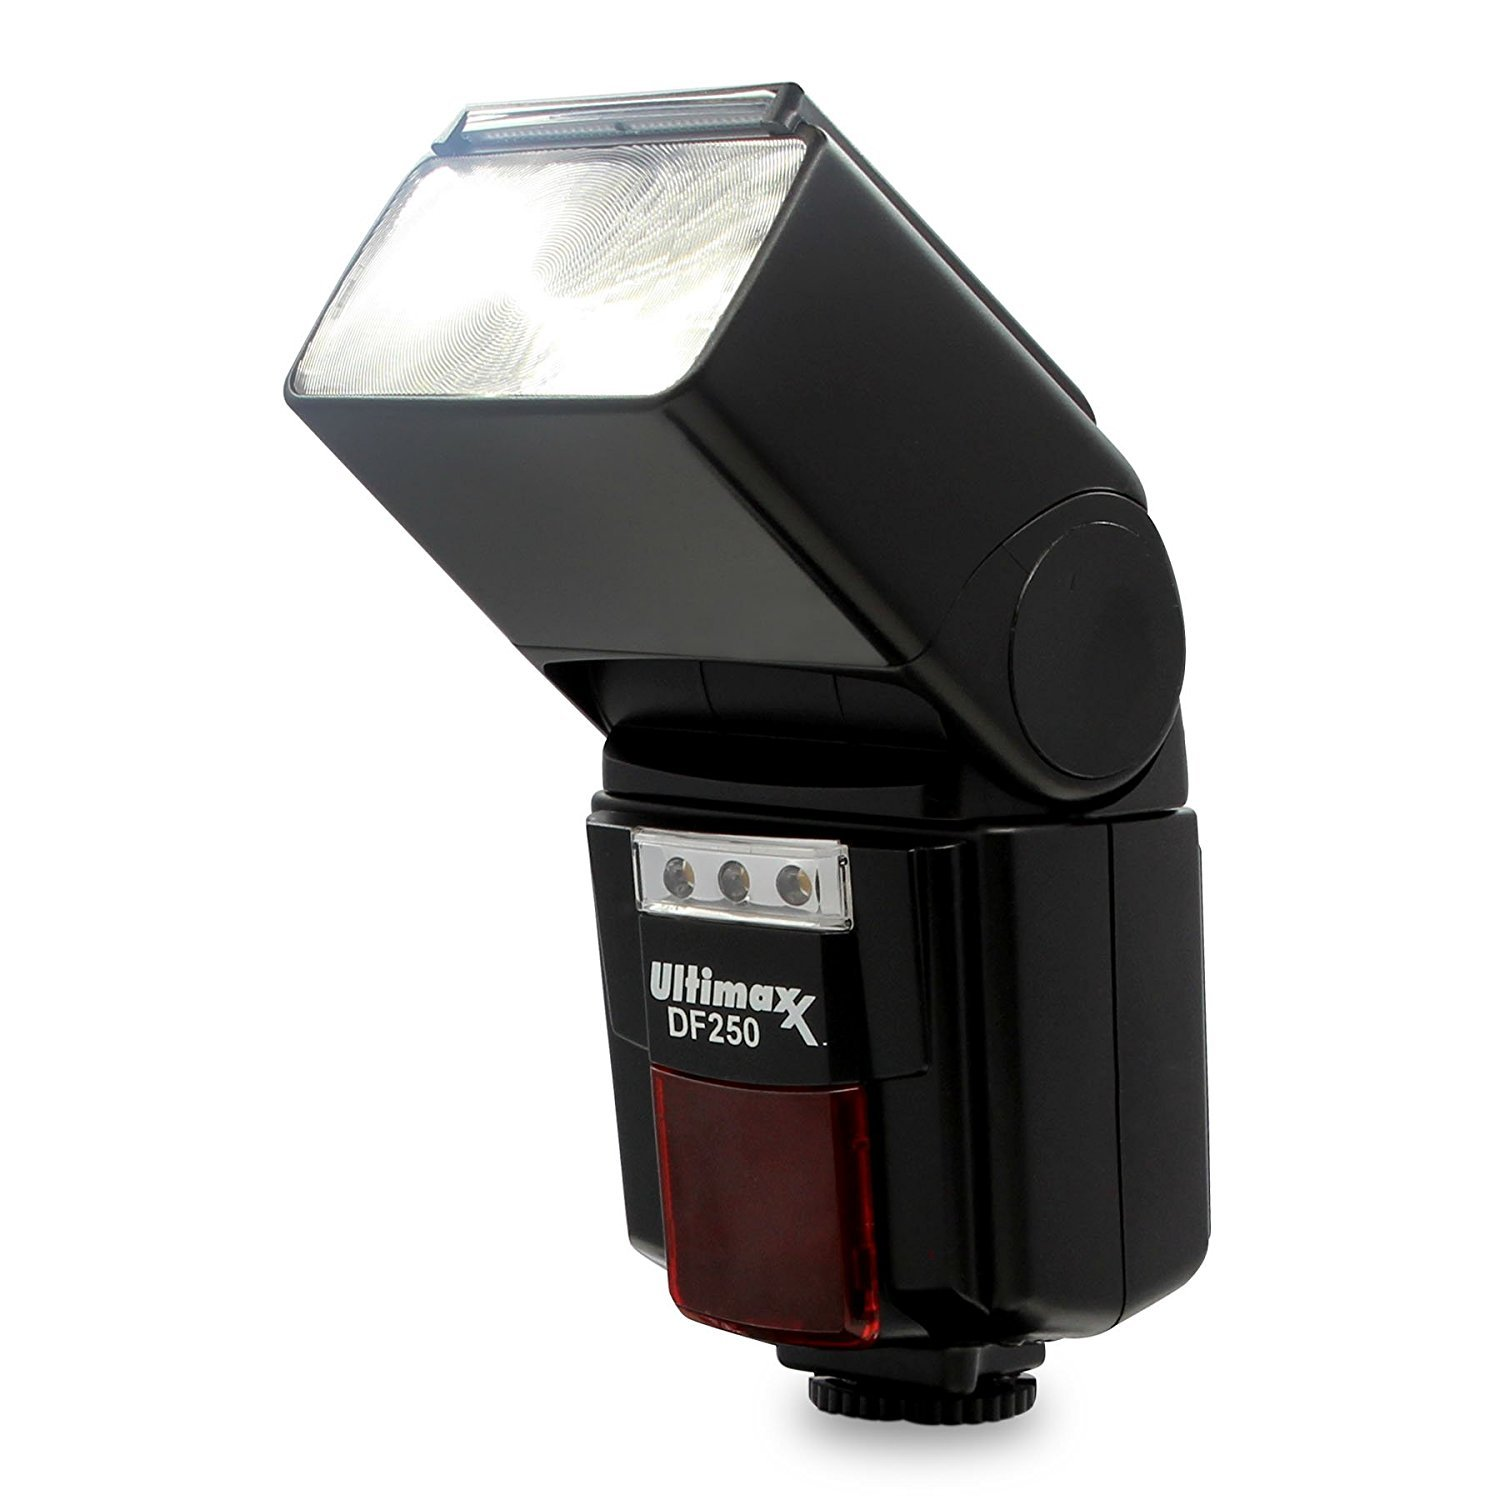 Ultimaxx High Power Automatic Flash with LED Light for Nikon D7500, D500, D600, D610, D700, D750, D800, D810, D850, D3100, D3200, D3300, D3400, D5100, D5200, D5300, D5500, D5600, D7000, D7100, D7200